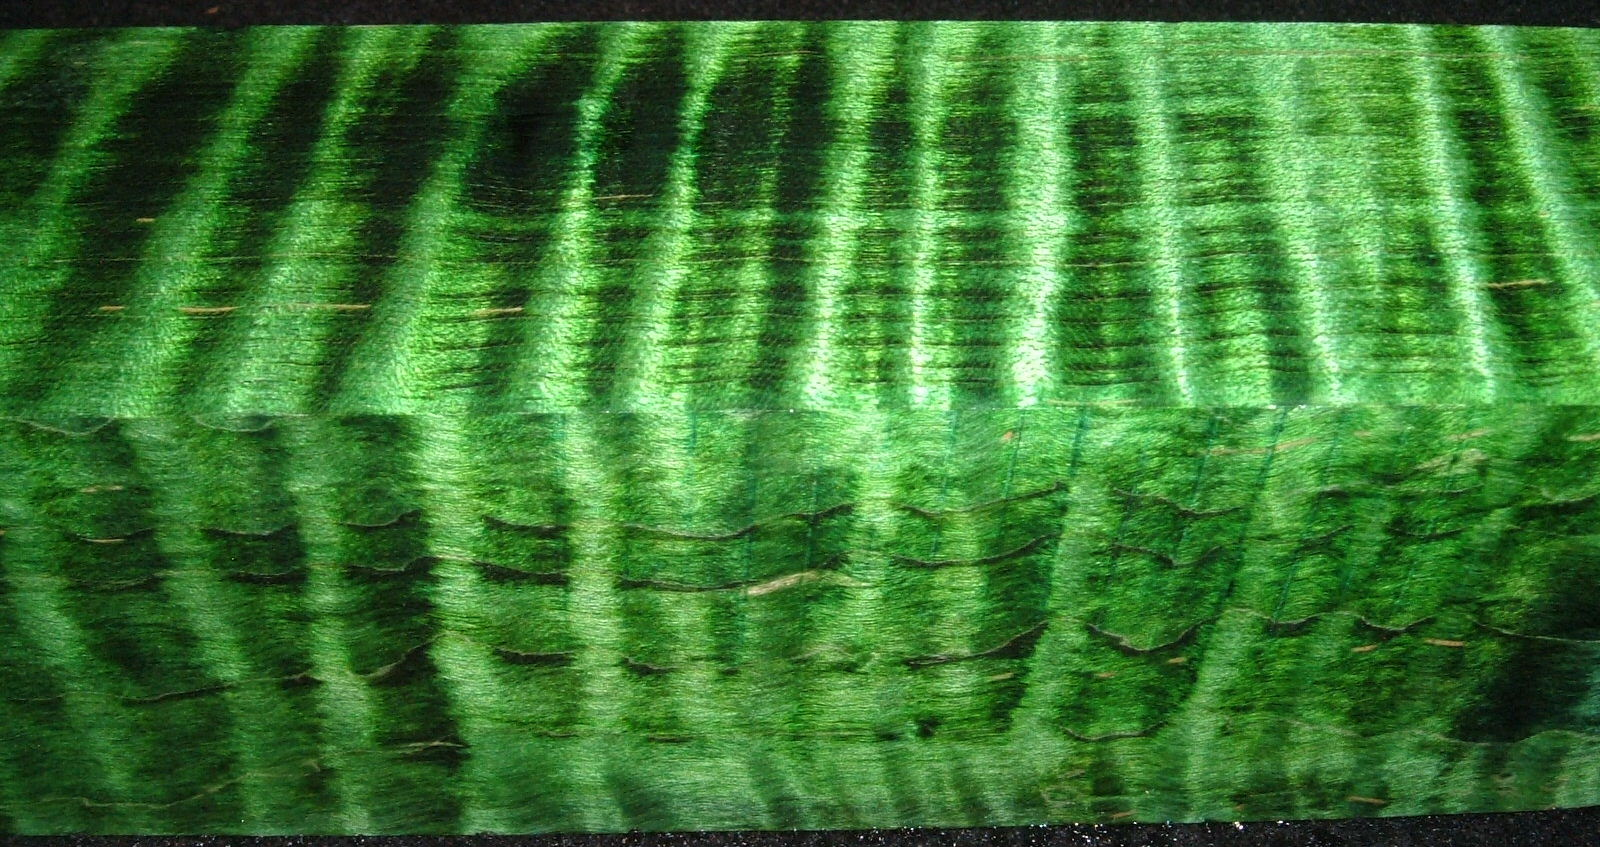 Z310, 1-7/8x1-7/8x6-3/8 ,Green, Curly Tiger Maple Dyed Stabilized, wood turning block